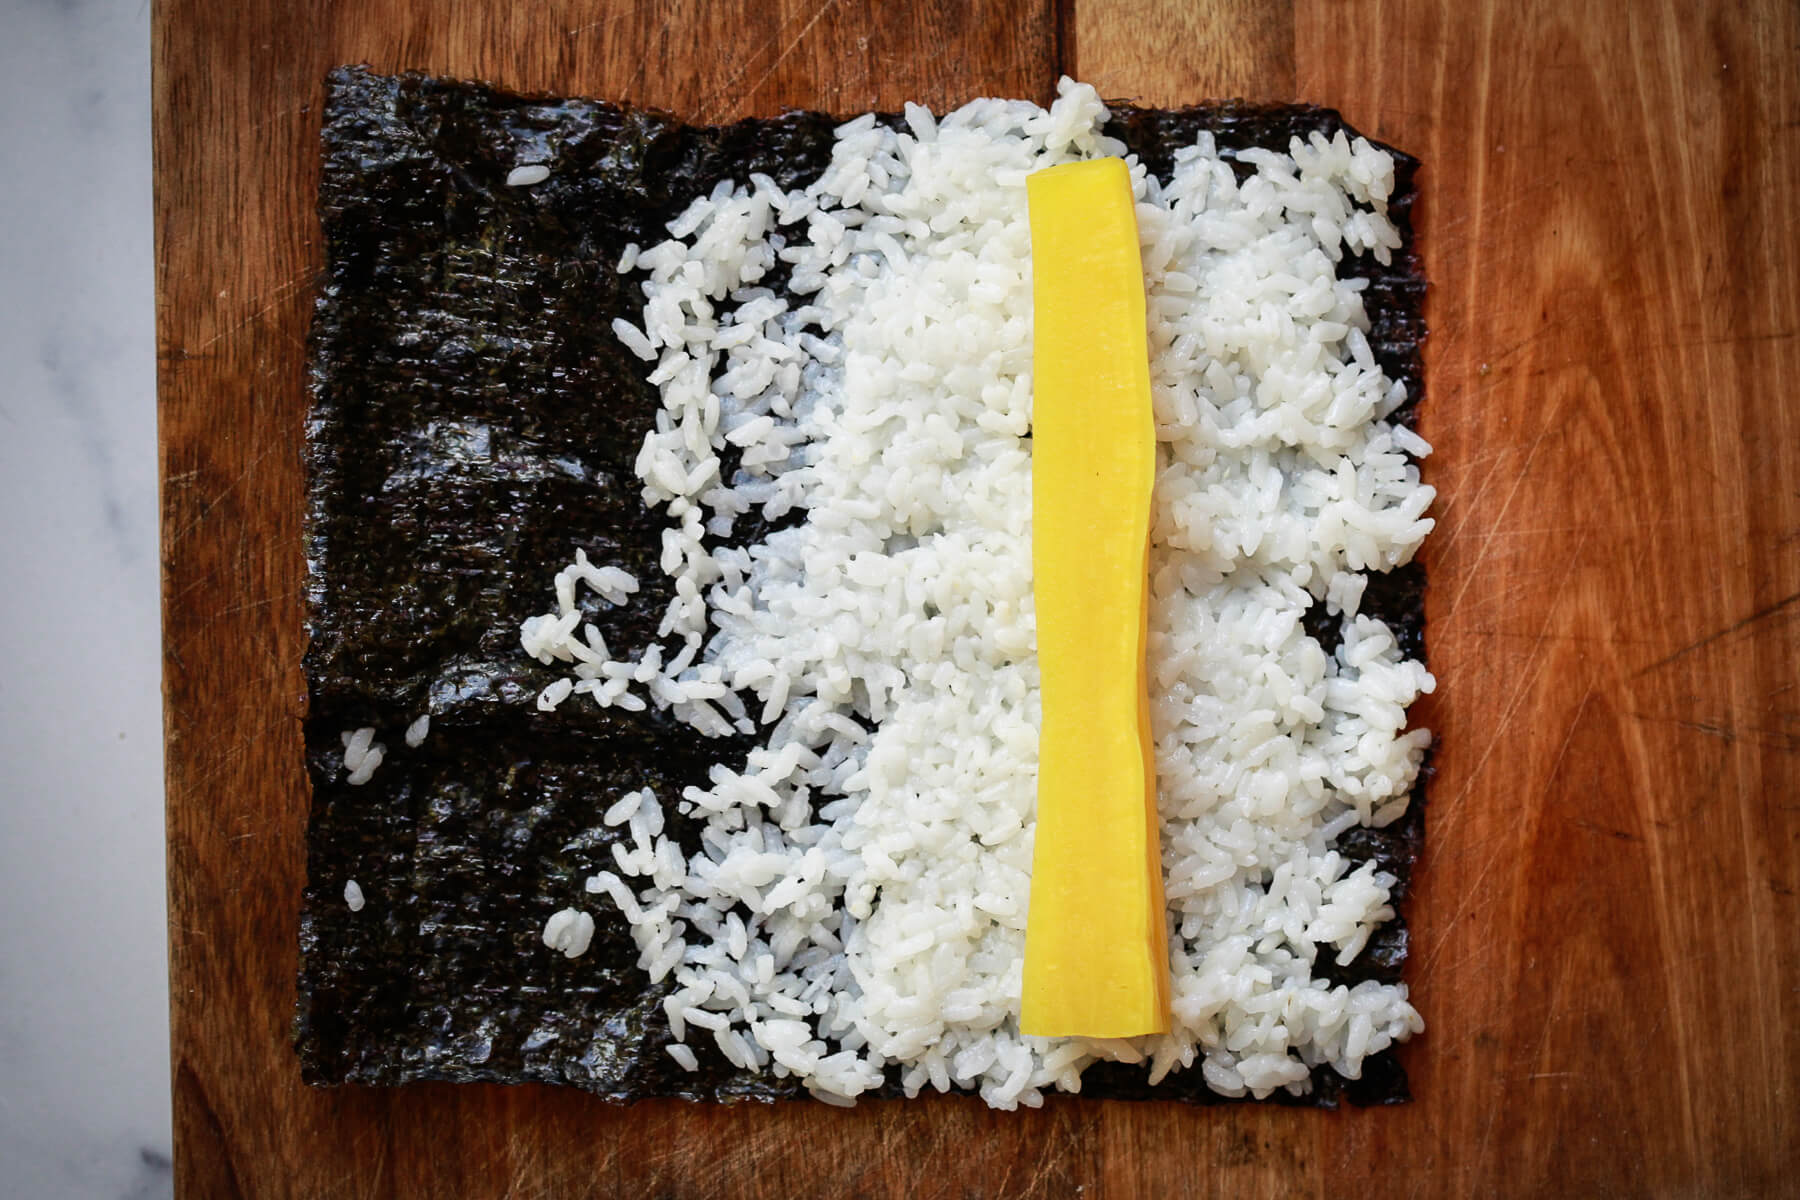 Nori is partially covered with sushi rice and a piece of oshinko is on top.